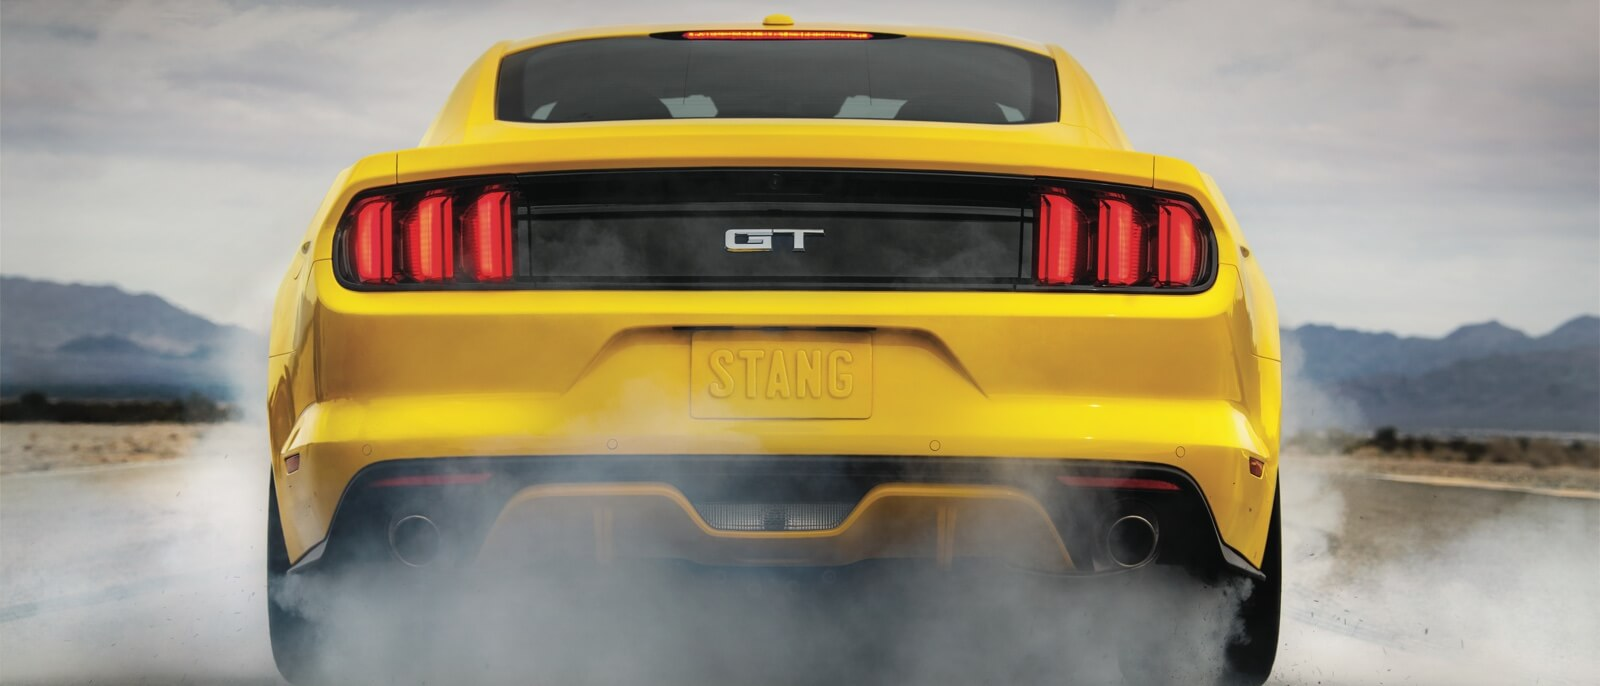 2016 Ford Mustang GT rear exterior up close